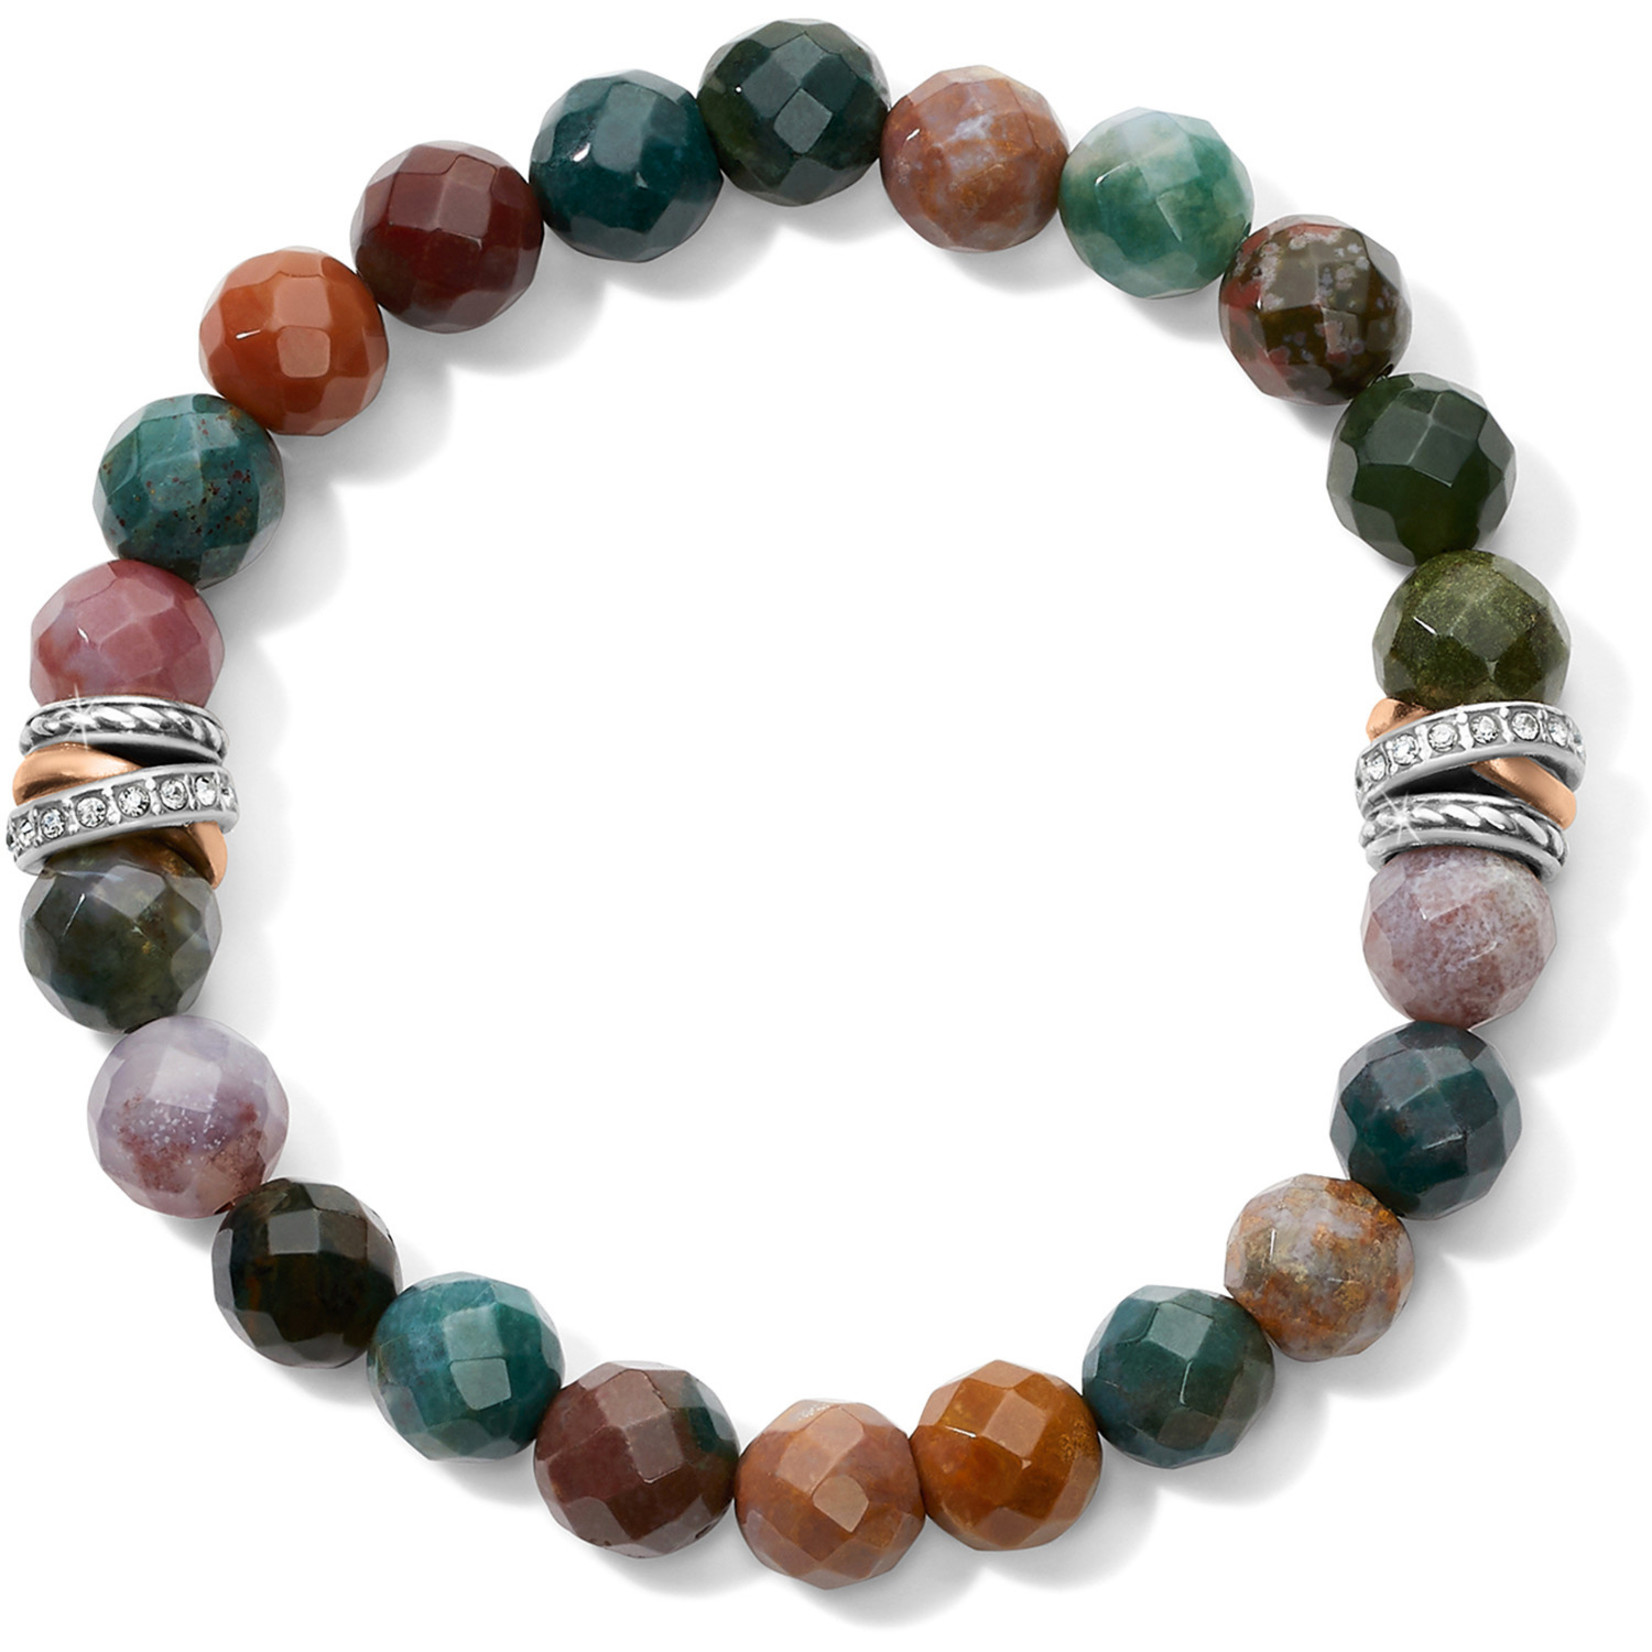 Brighton Neptune's Rings Jasper Stretch Bracelet